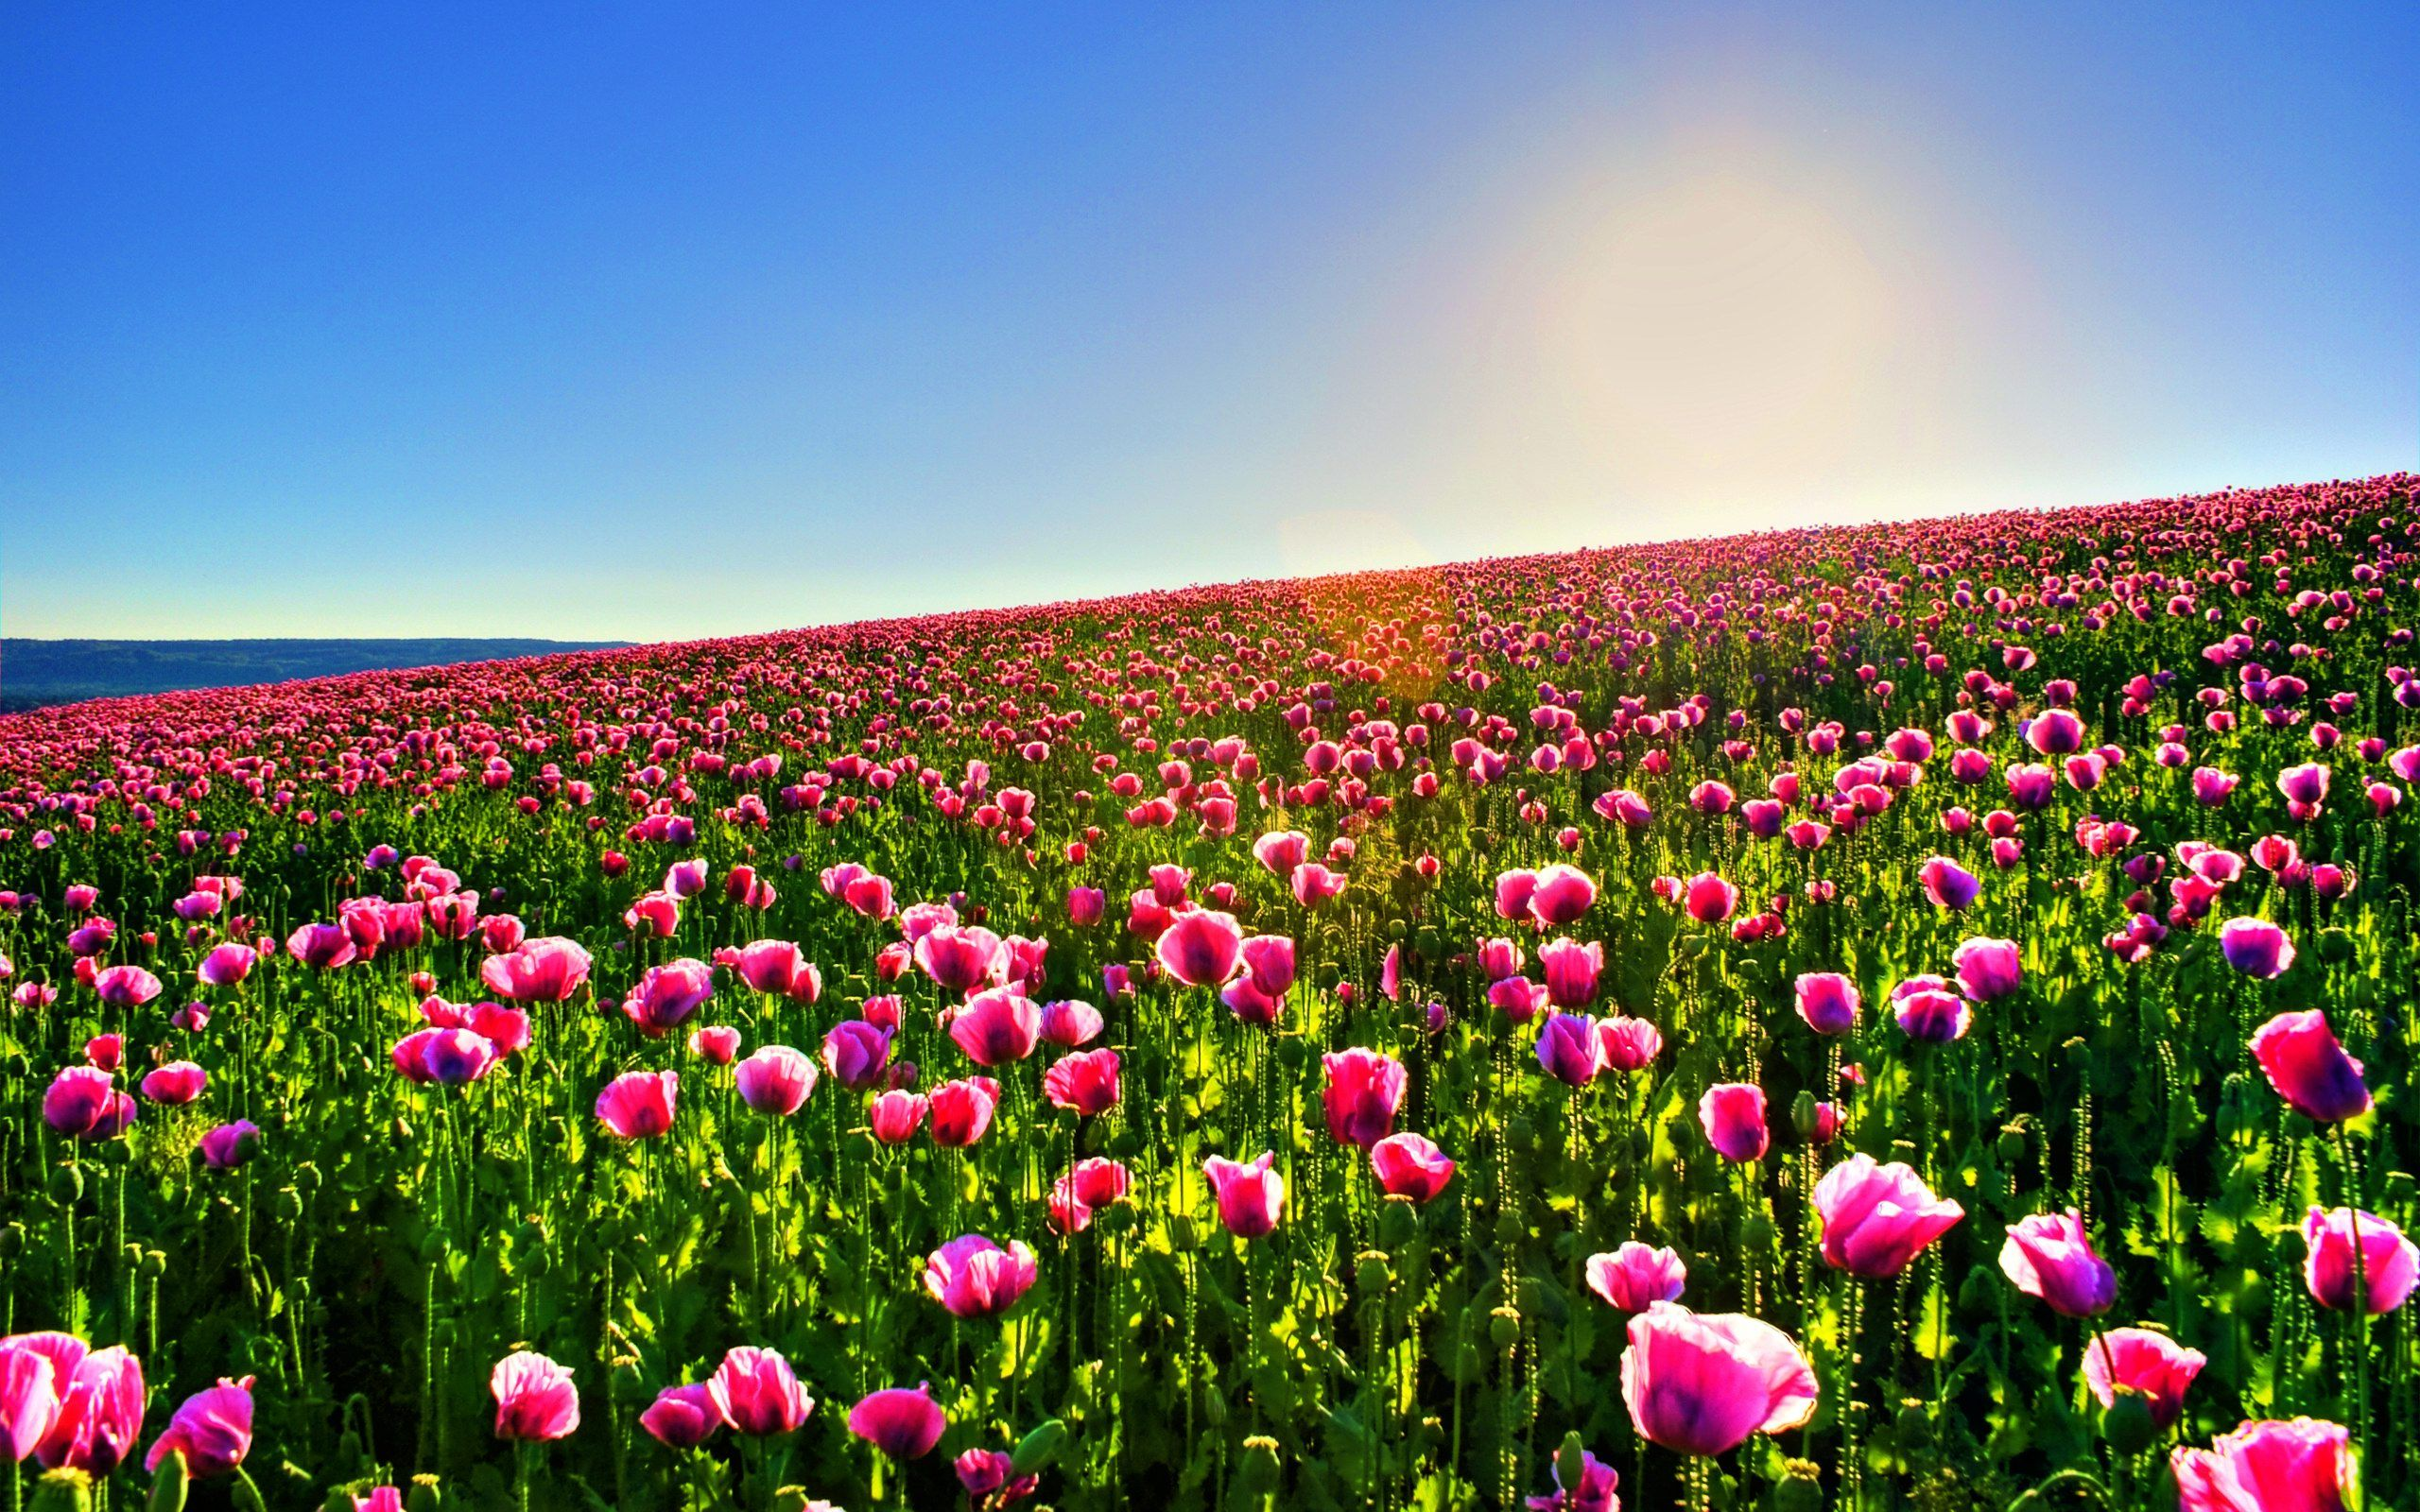 Pink Flower Field Hd Wallpapers Wallpapers